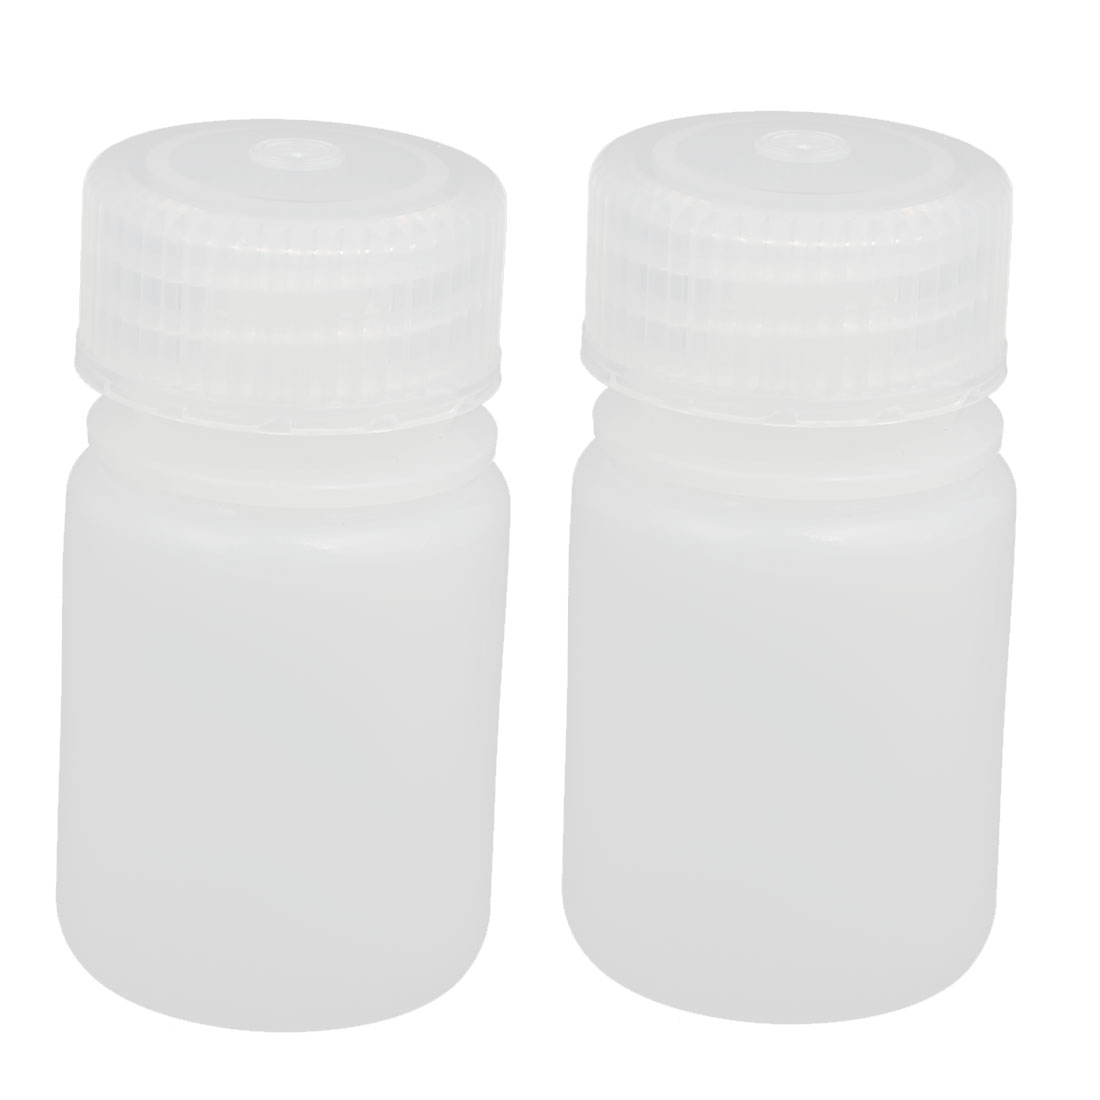 2pcs 30ml Plastic Round Laboratory Reagent Bottle Sample Thicken Bottle White